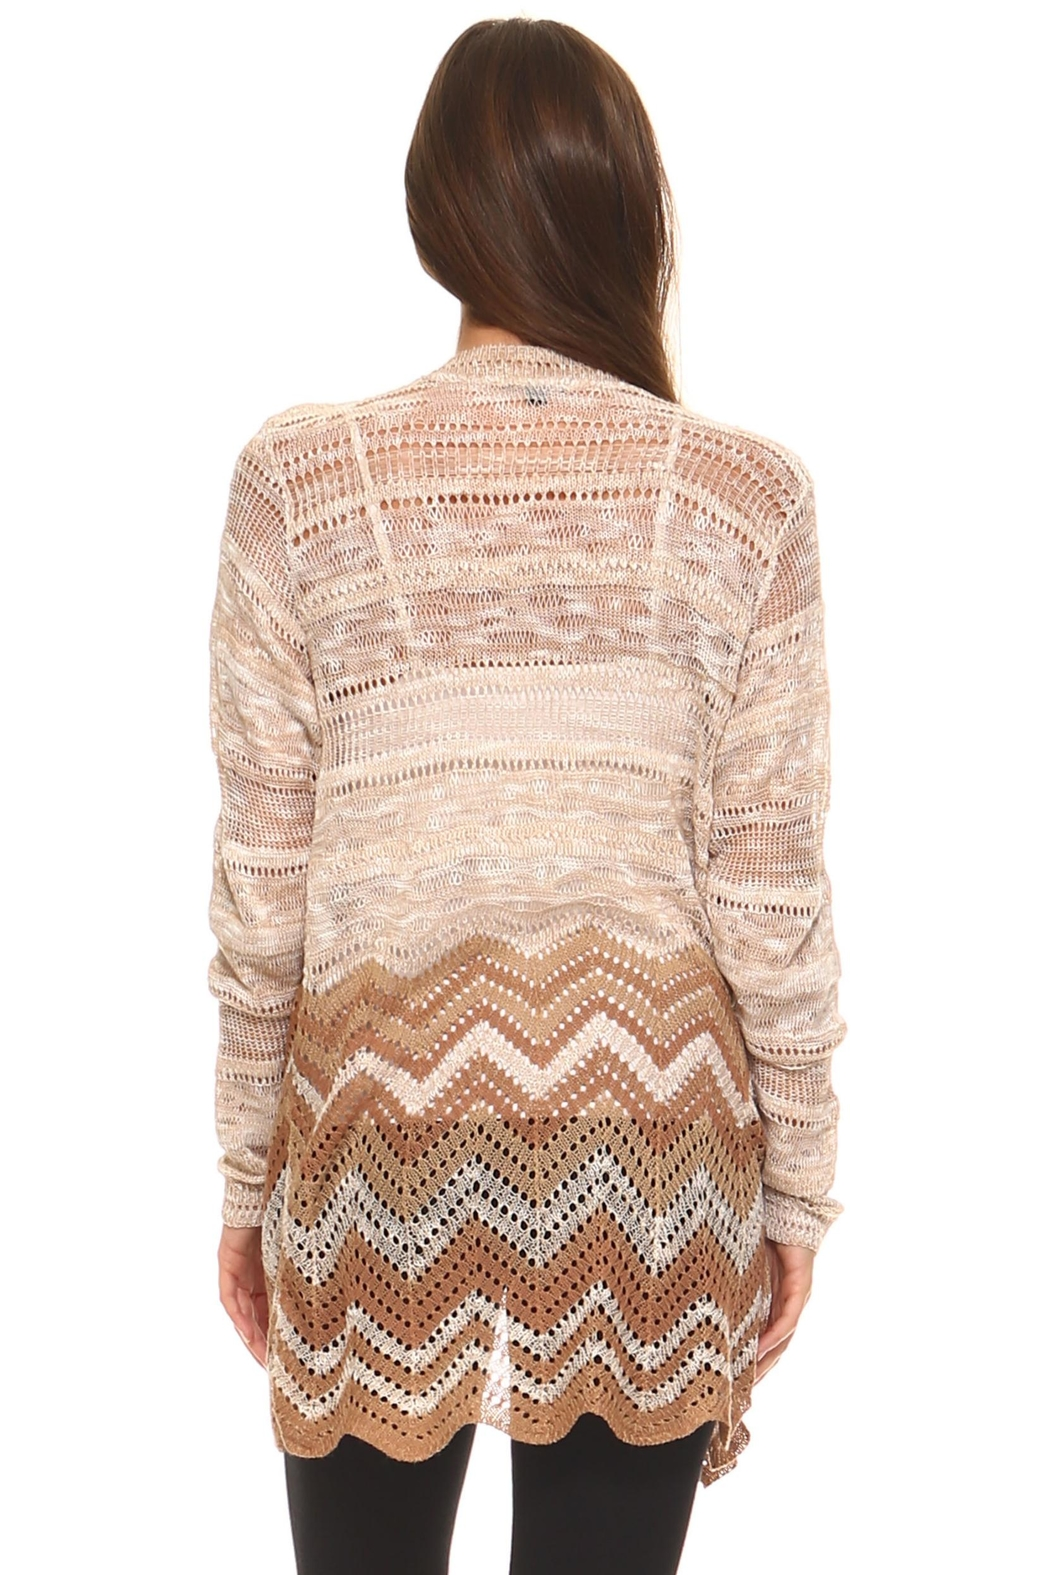 rxb Chevron Print Cardigan - Back Cropped Image